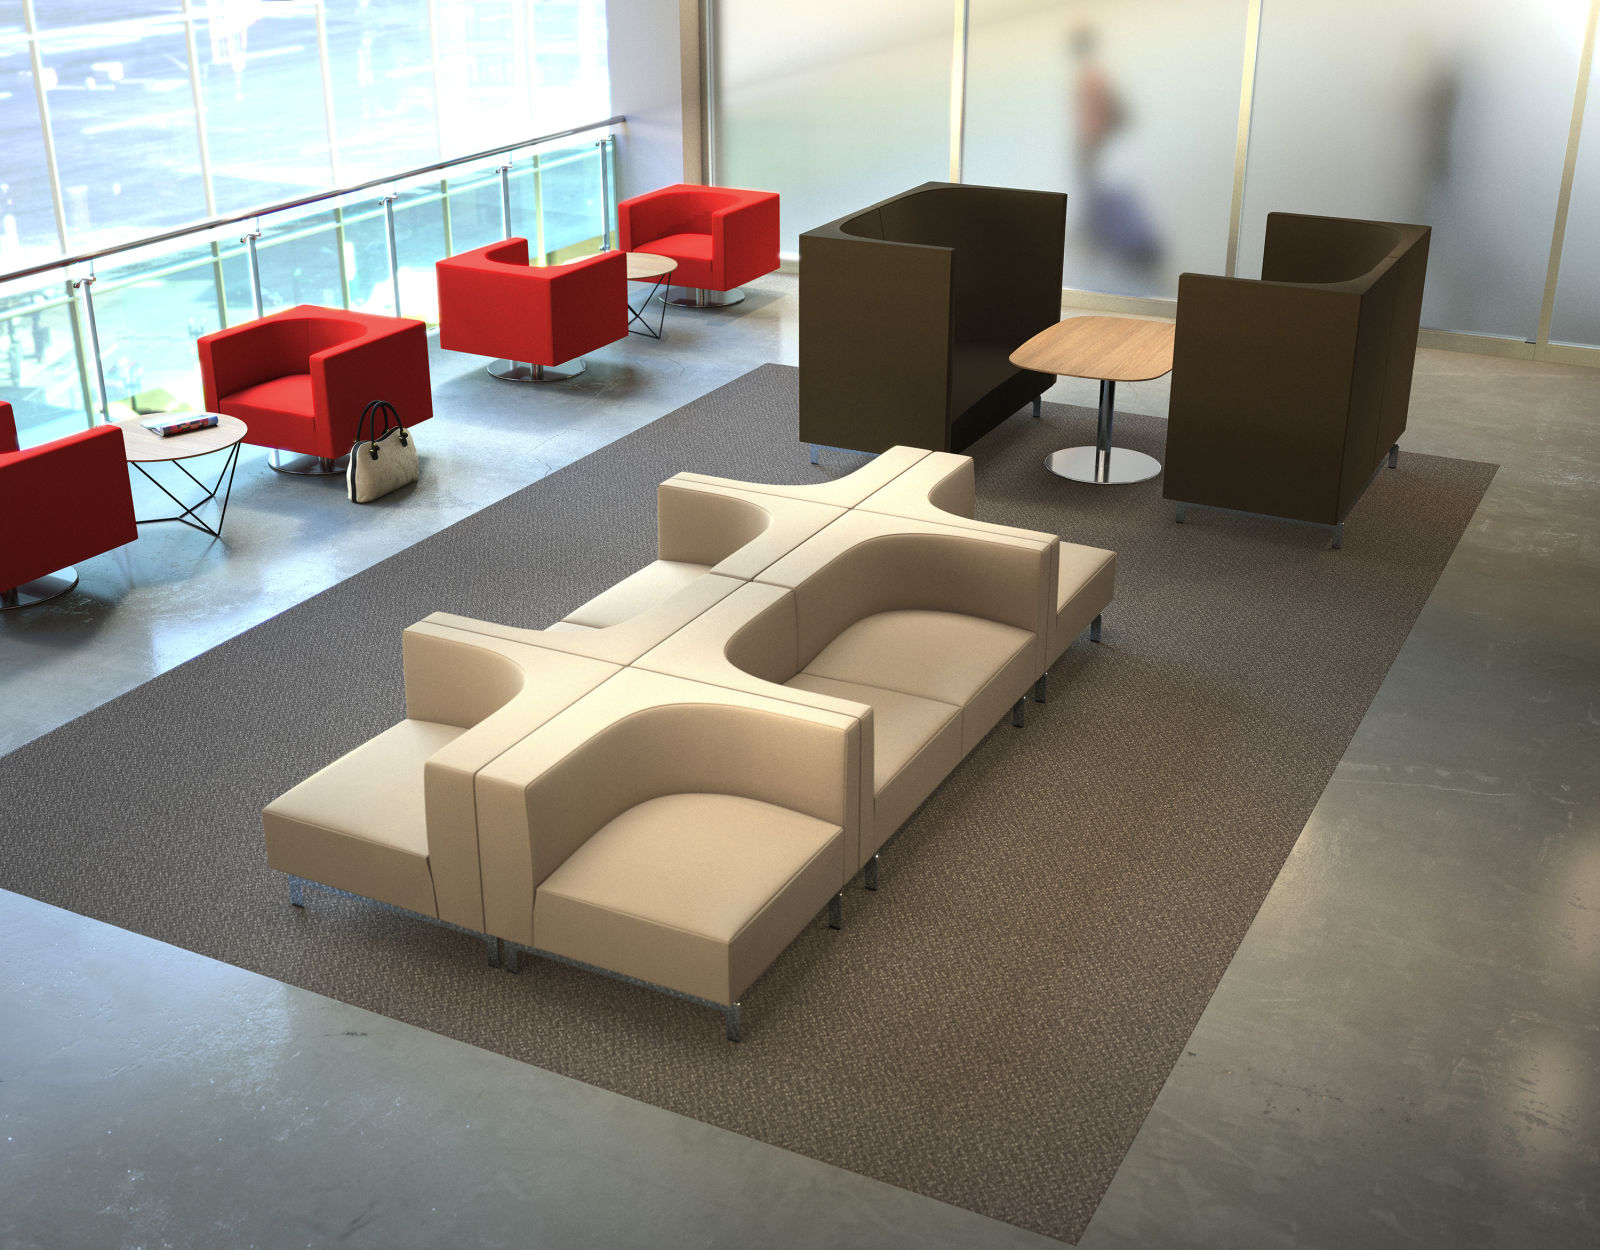 Design Your Office With A Gym Style Layout To Increase